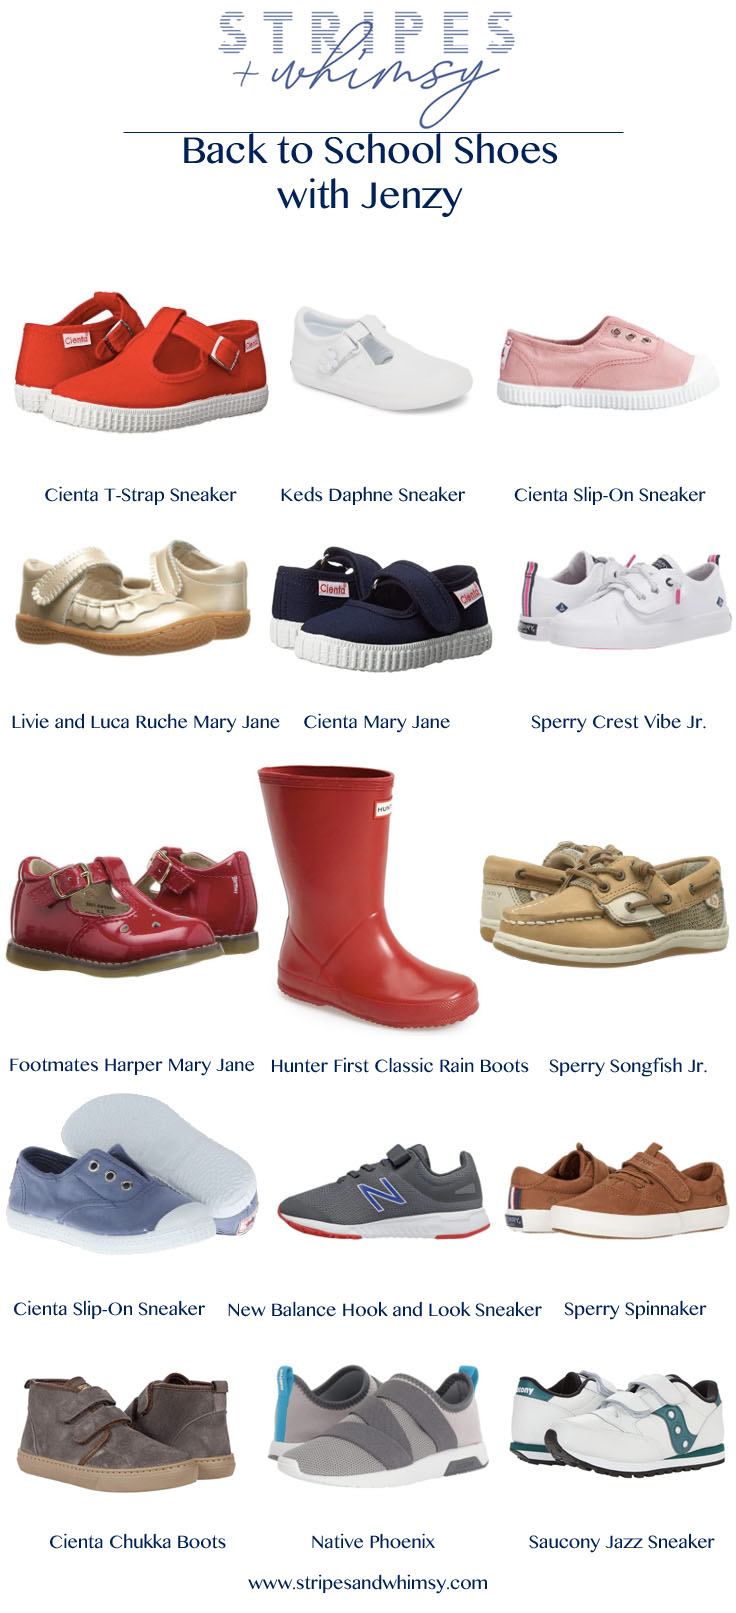 back to school shoes - jenzy - toddler shoes - cute kids shoes